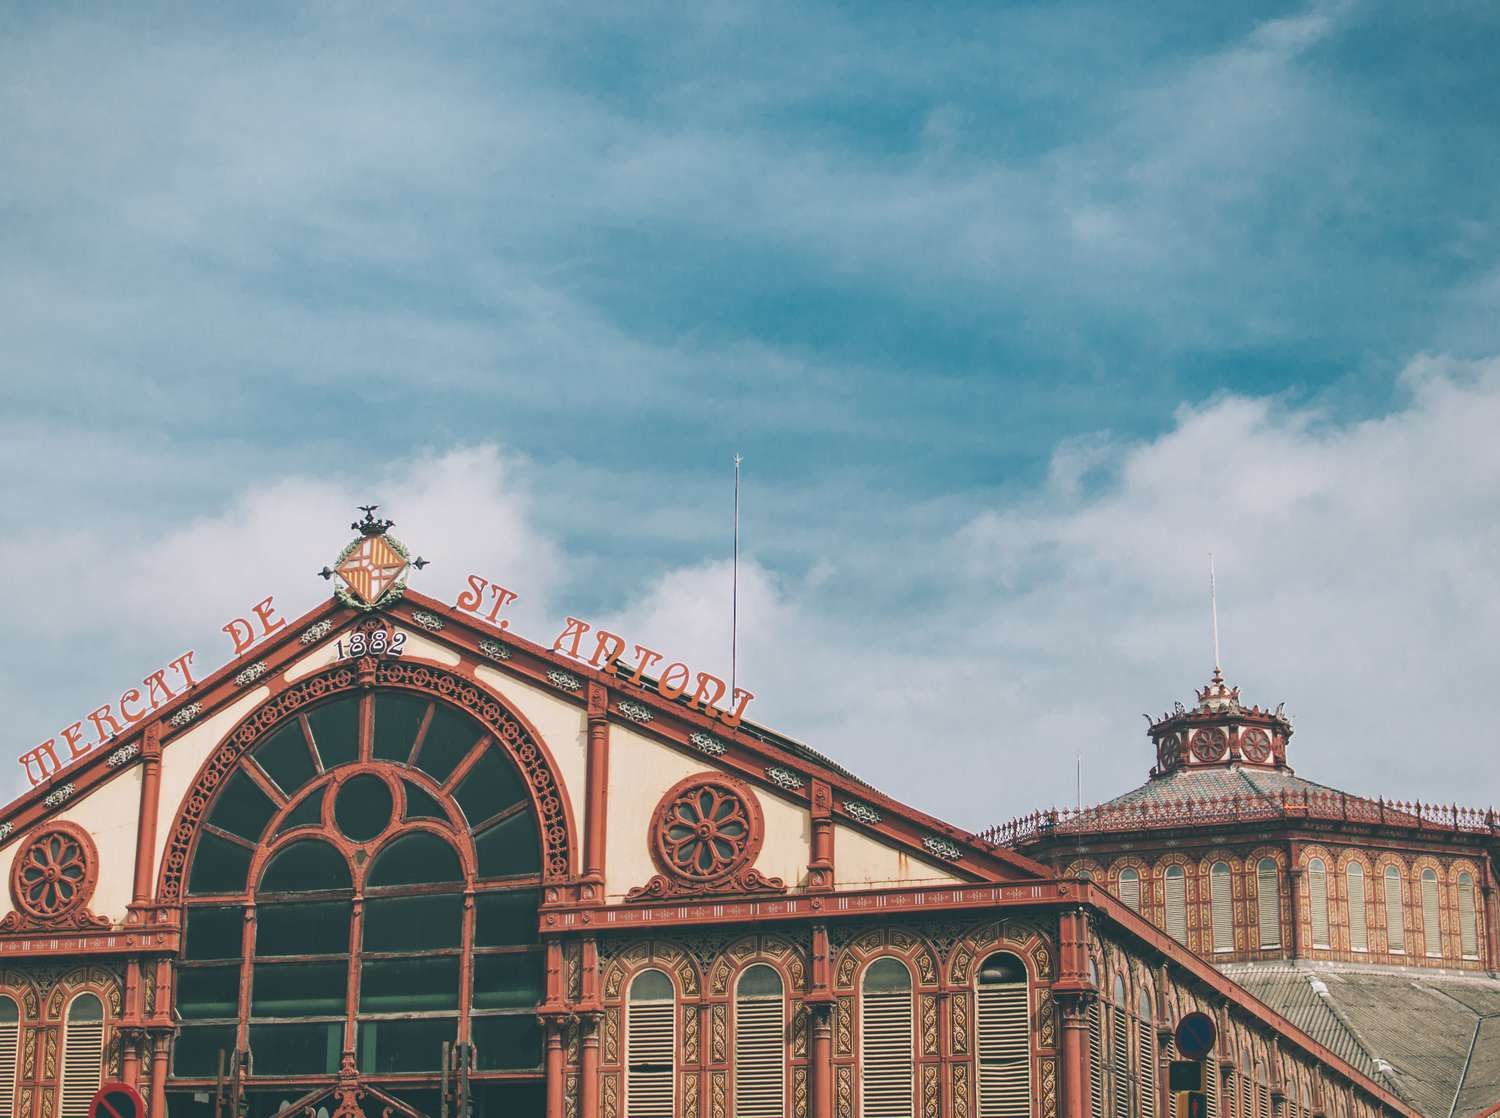 Exterior of the newly renovated Sant Antoni market in Barcelona.